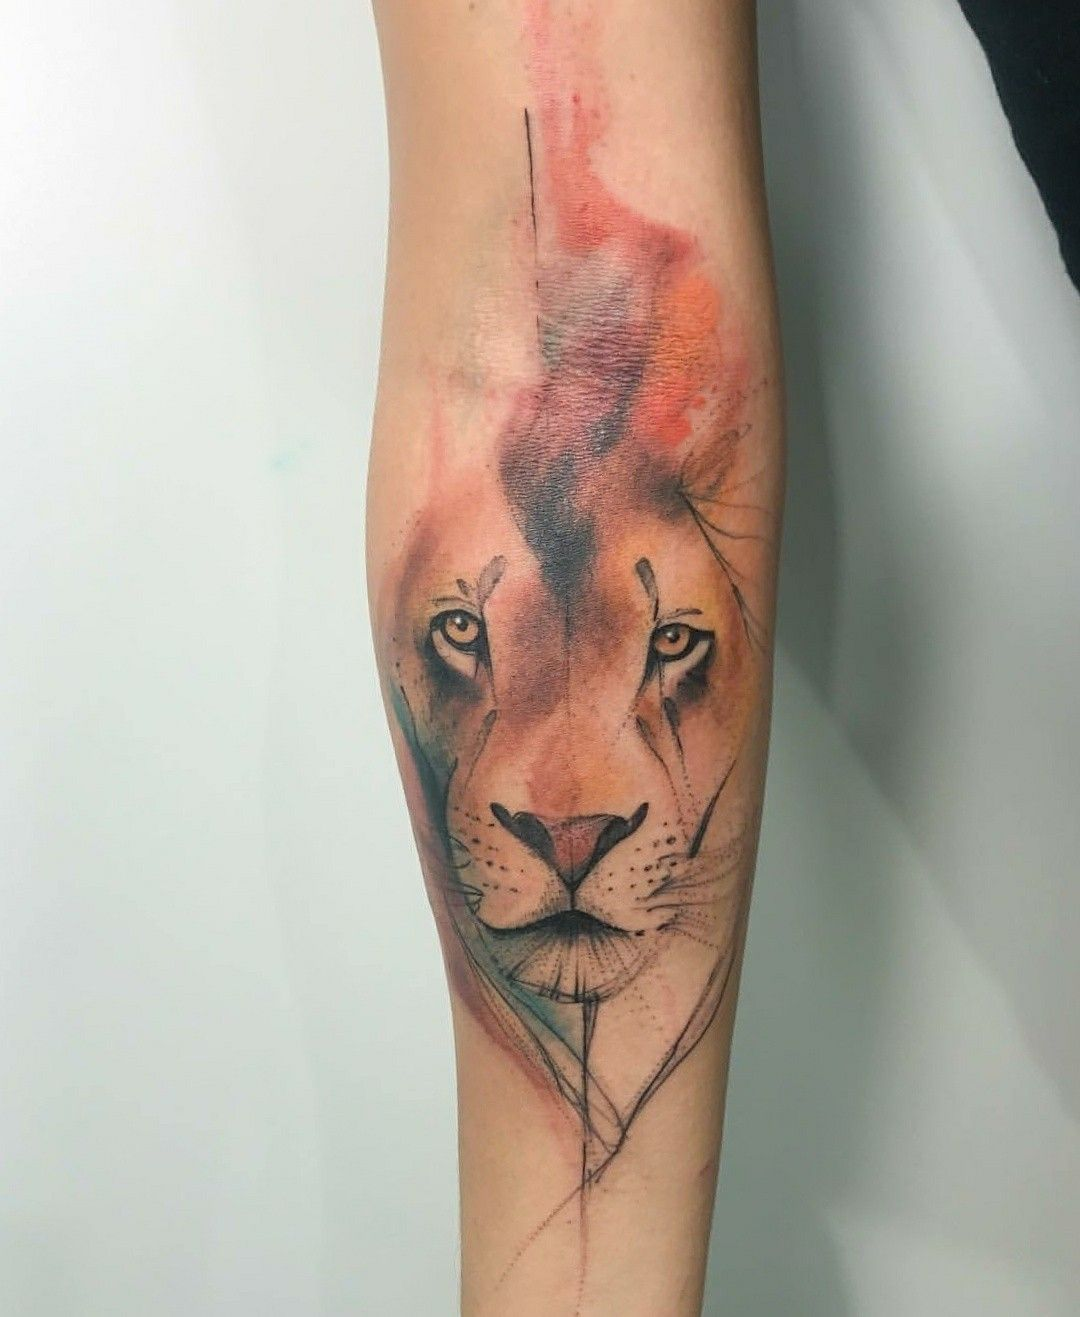 Epingle Par Xou Sur Idee Tatoo Tatouage Lion Tatoo